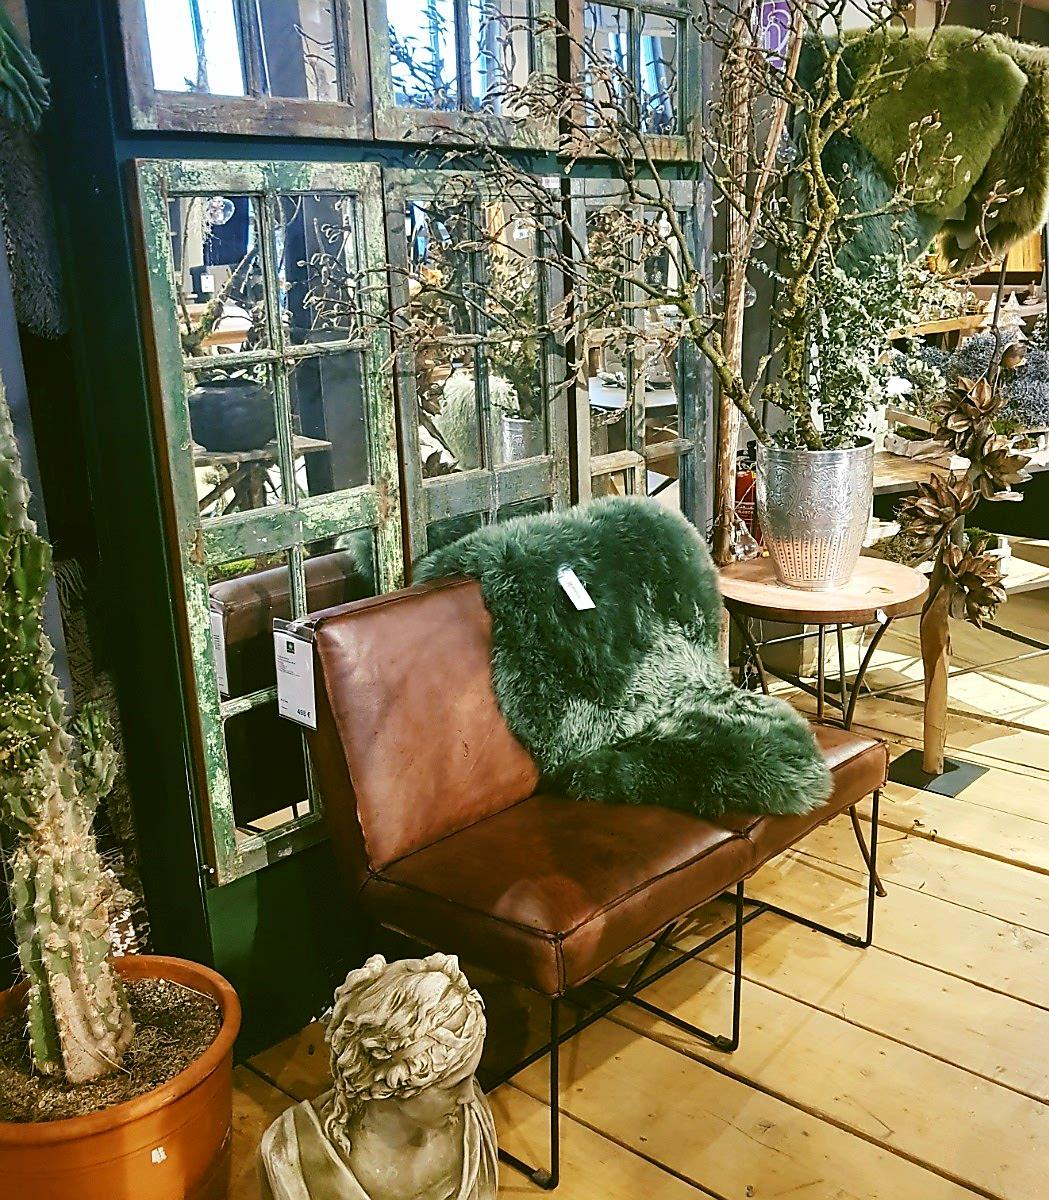 Shoppigtour im Wunderland/ #couch #fell #shabby #altefenster #grün